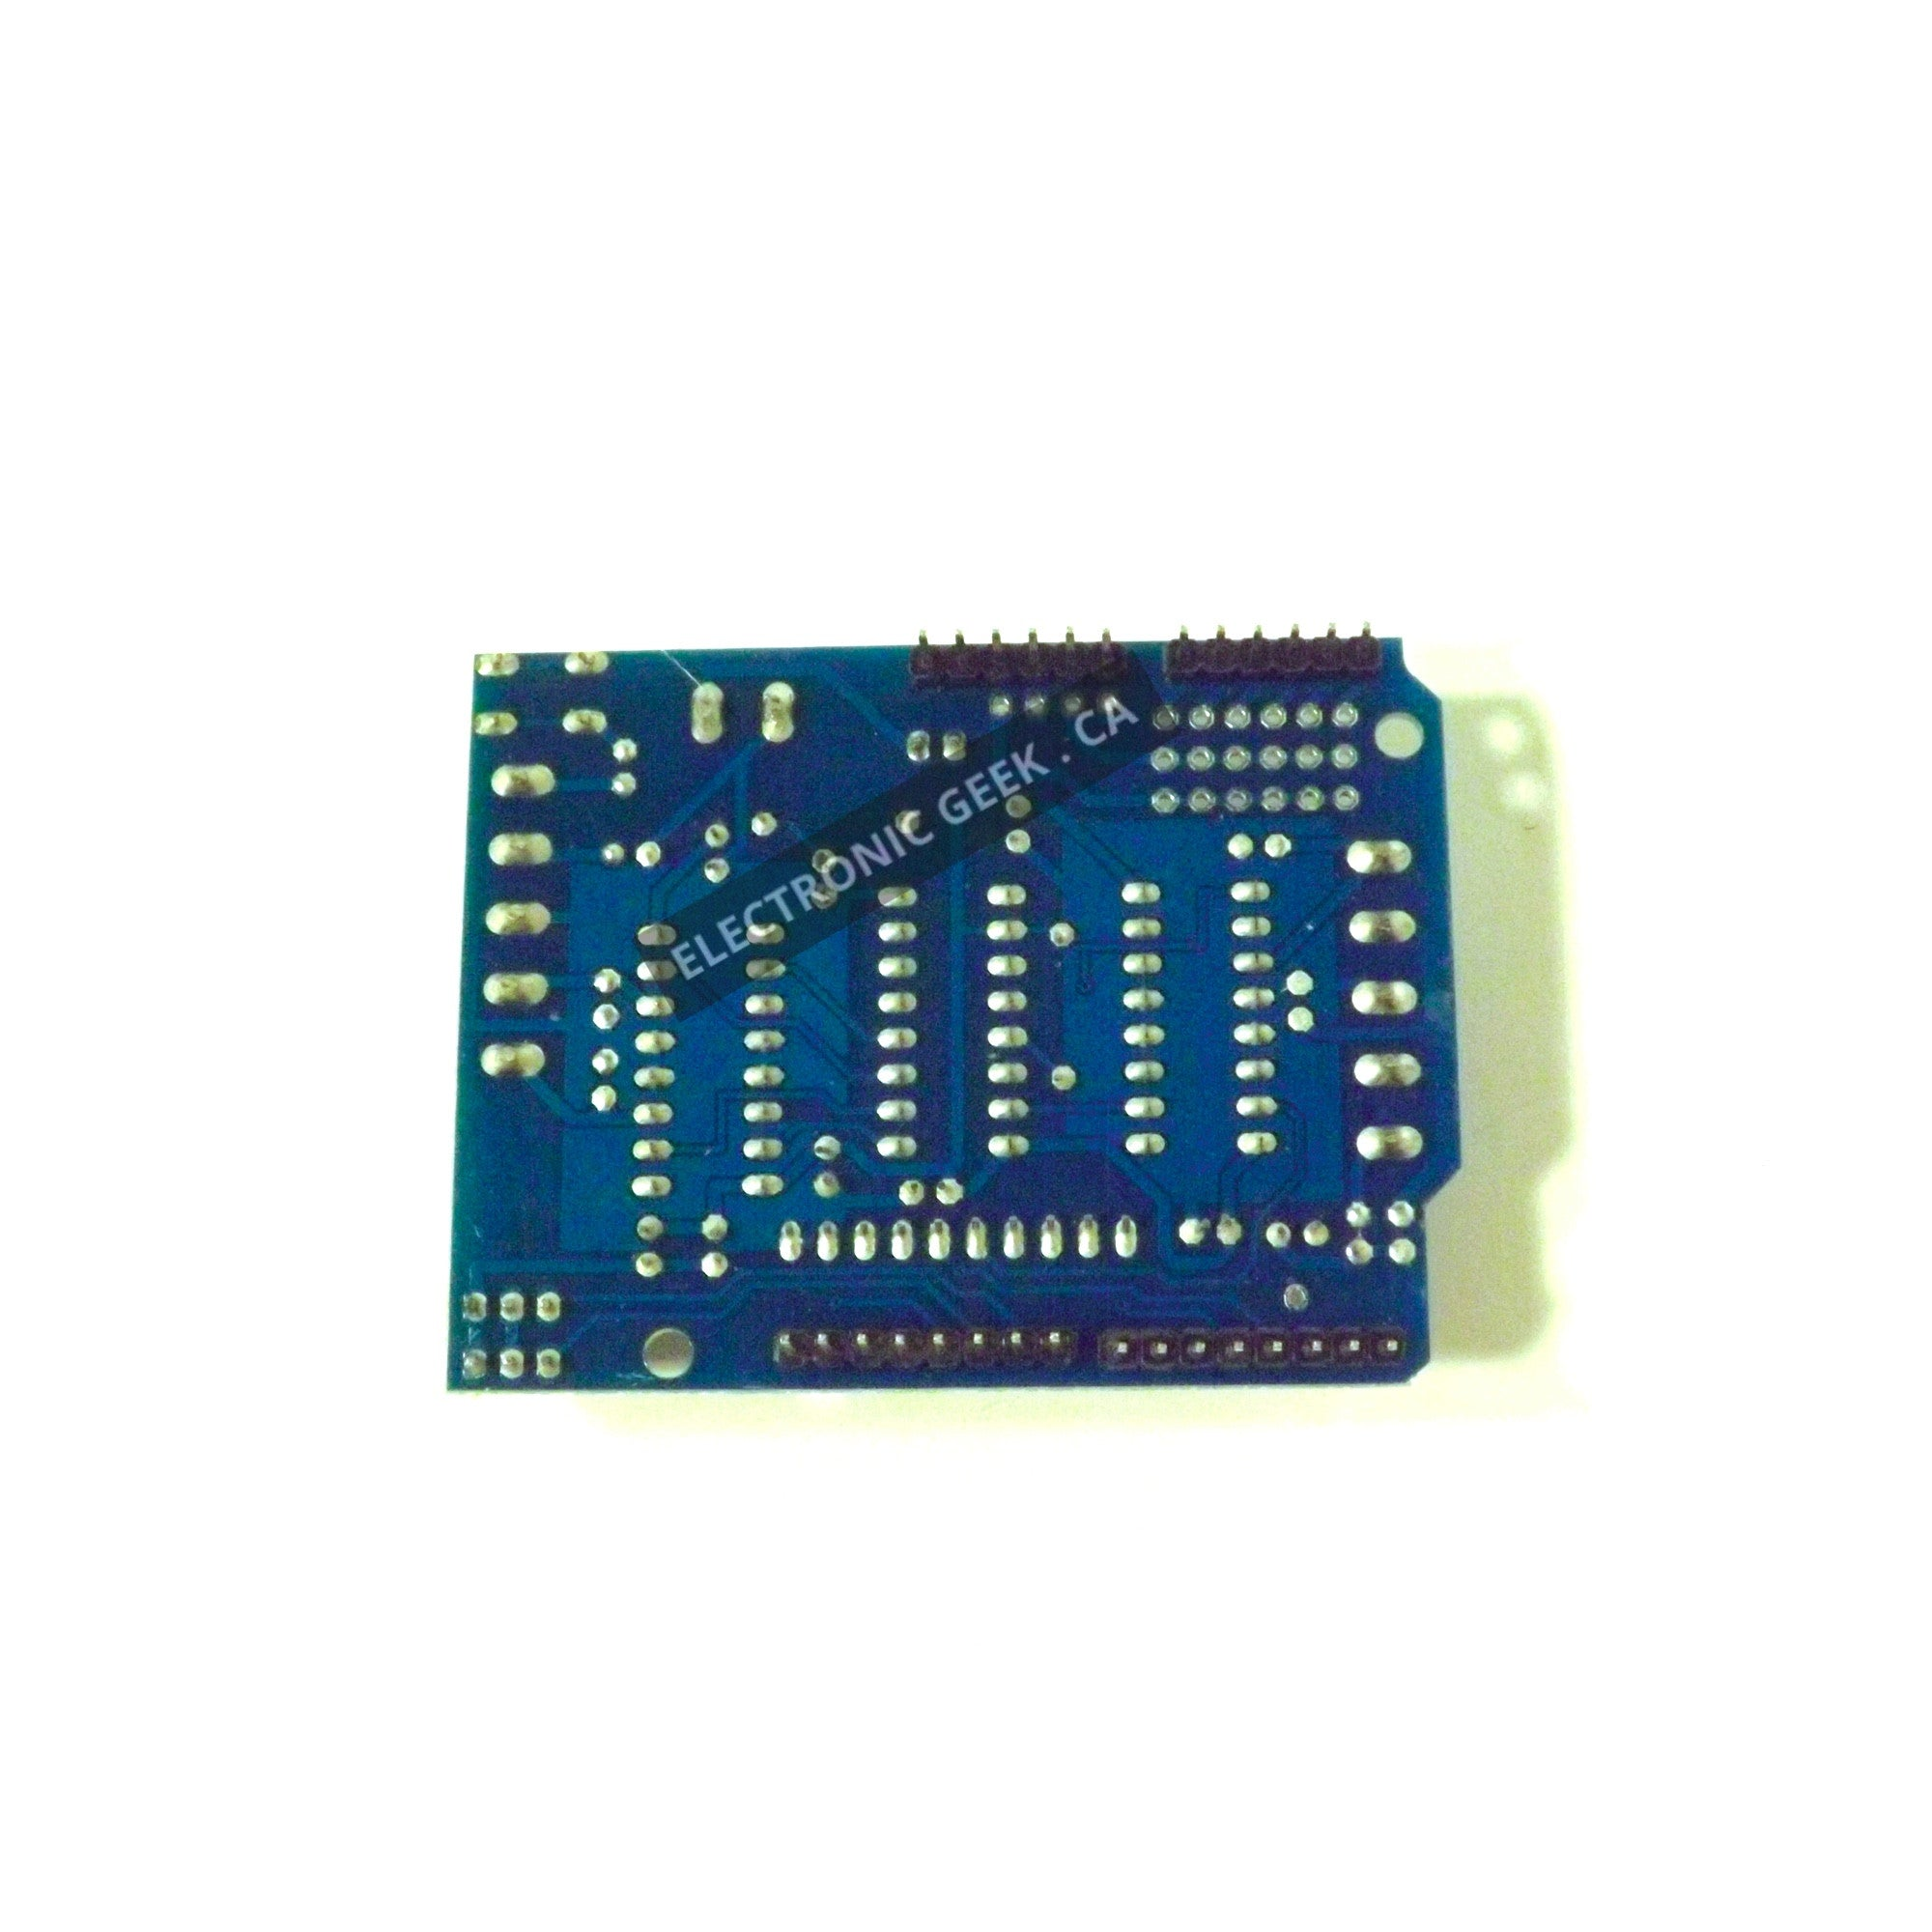 Arduino Accessories Tagged All Items Page 2 Color Sensing Tutorial Tsc230 Tsc3200 Sensor Circuit L293d Motor Control Shield For